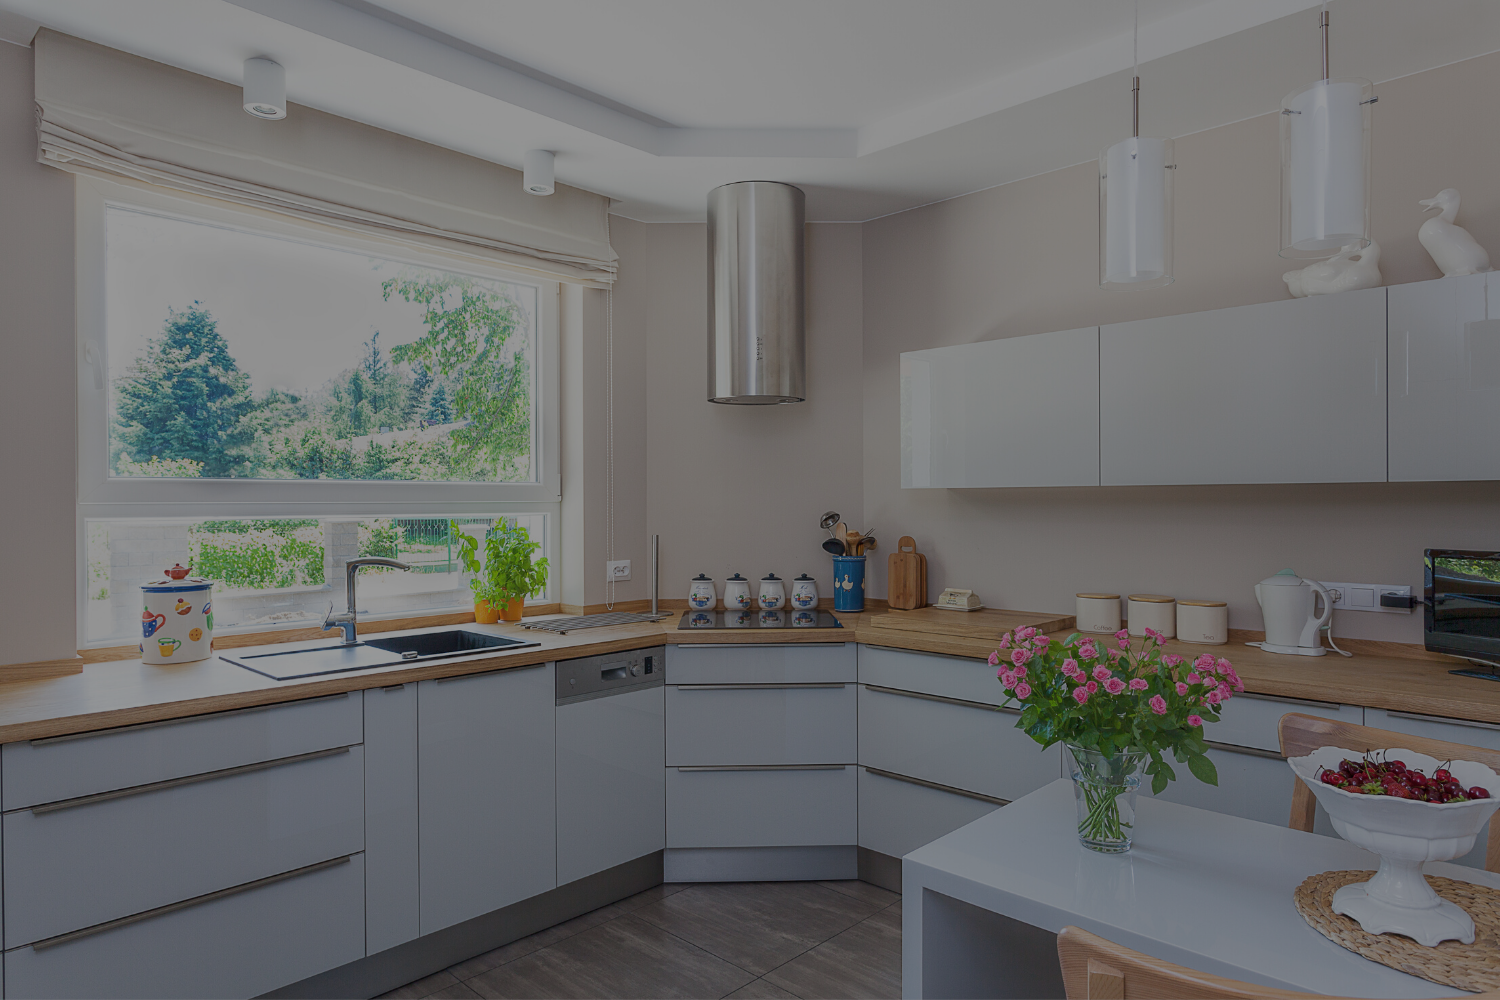 10 Ways to Maximize Space in Your Kitchen